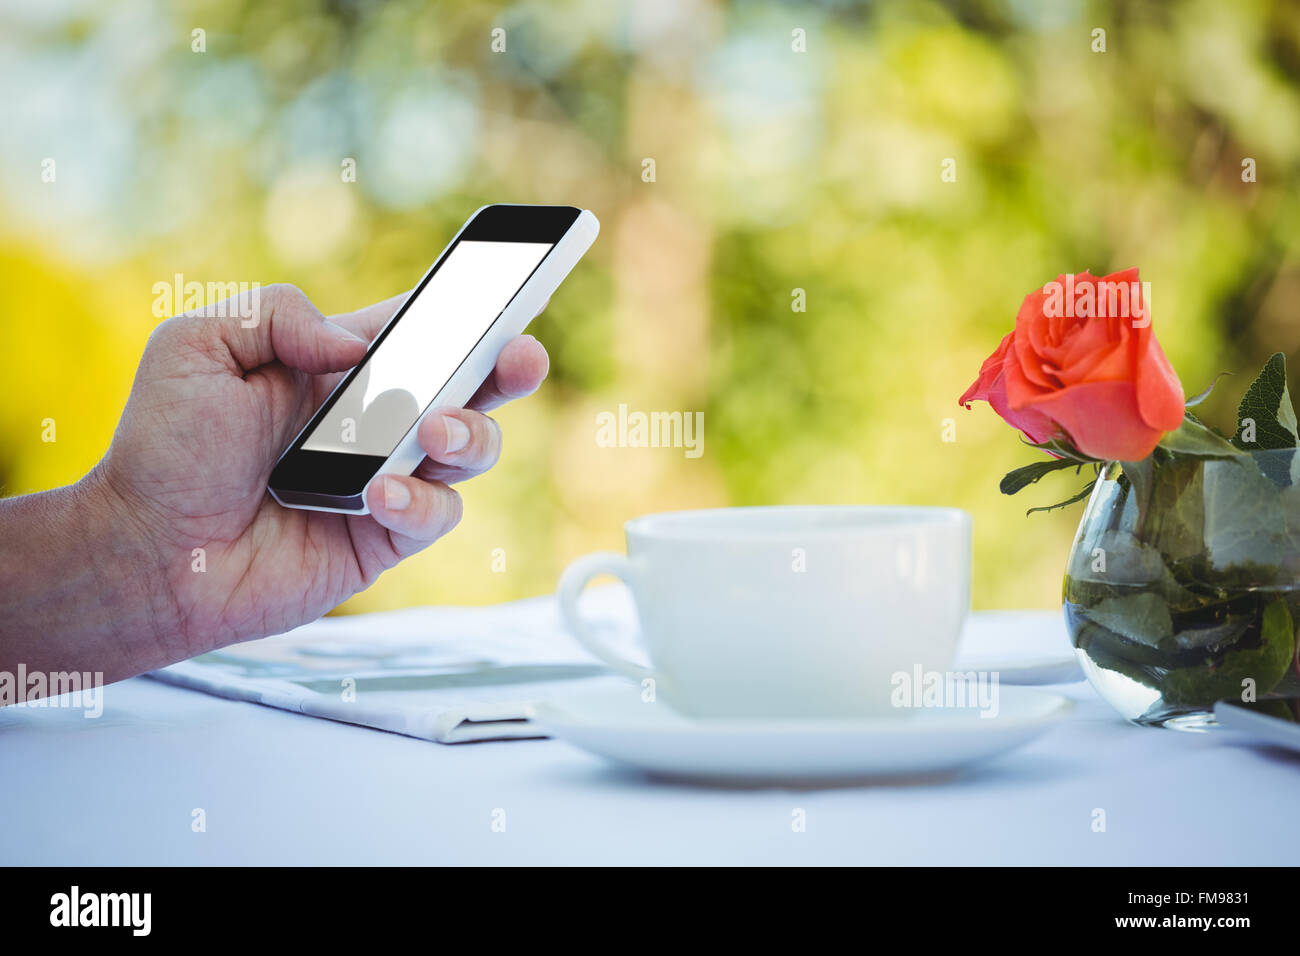 Close up of masculine hands using smartphone - Stock Image